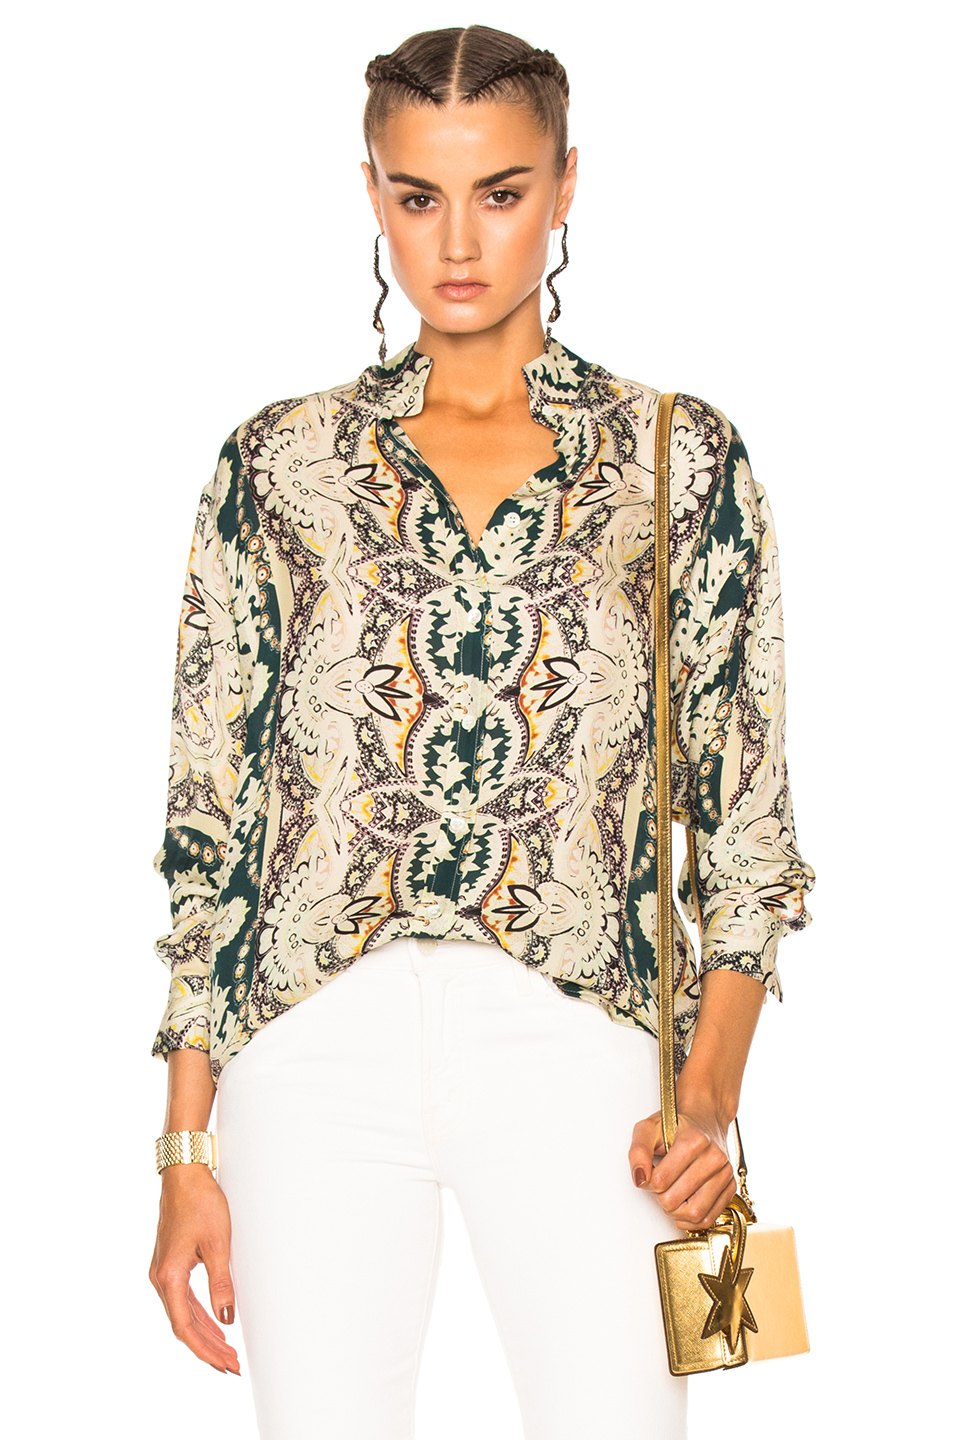 Etro Printed Blouse in Floral,Green